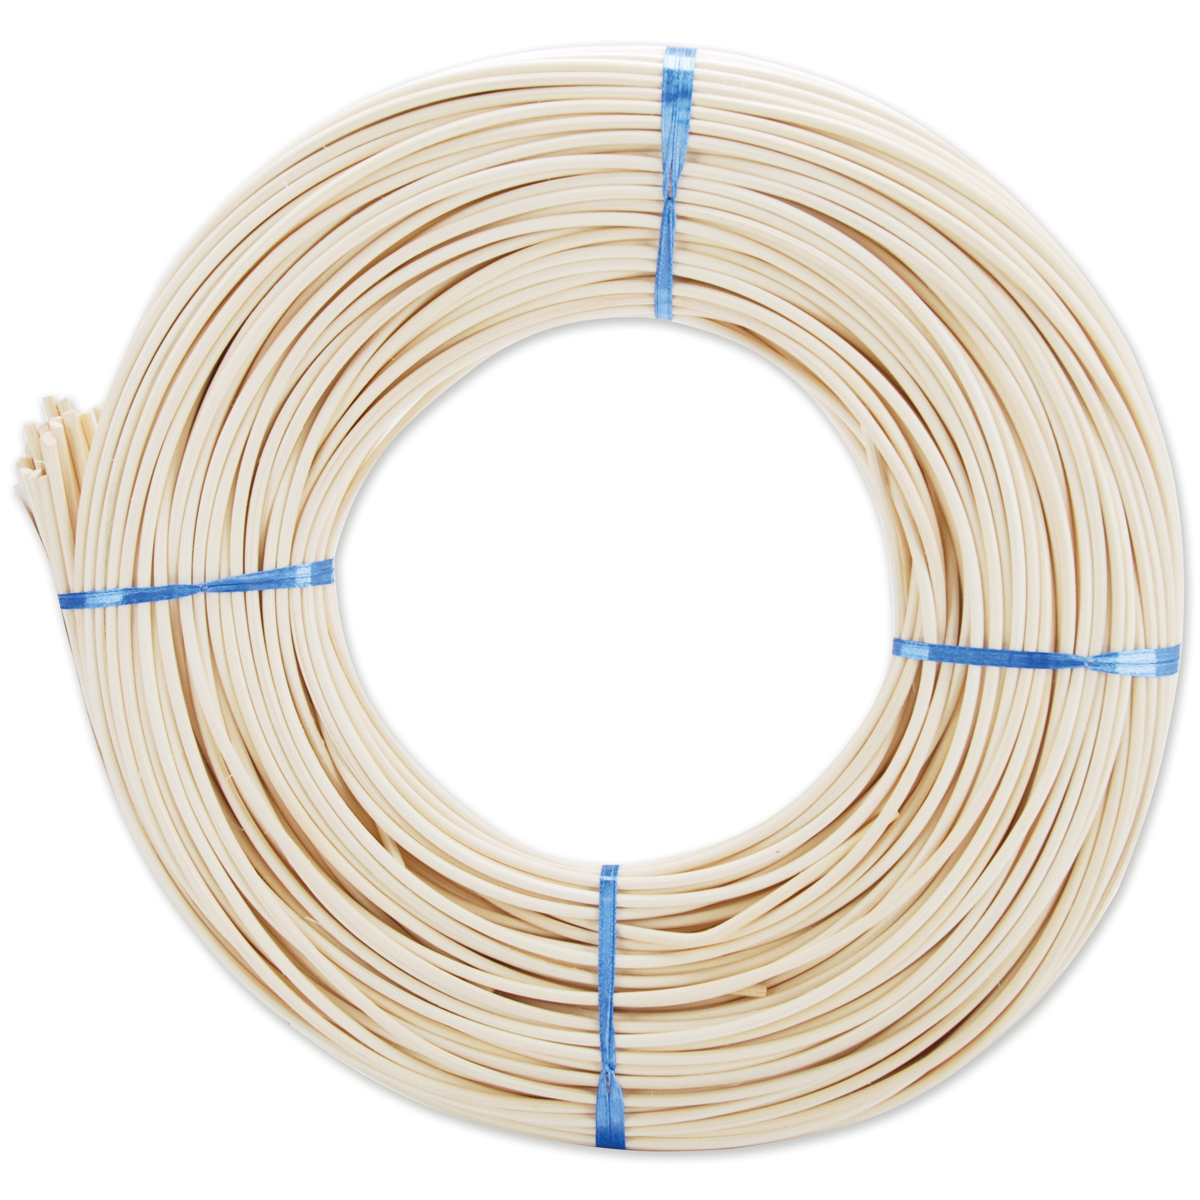 Round Reed #5 3.25mm 1 Pound Coil, Approximately 360'